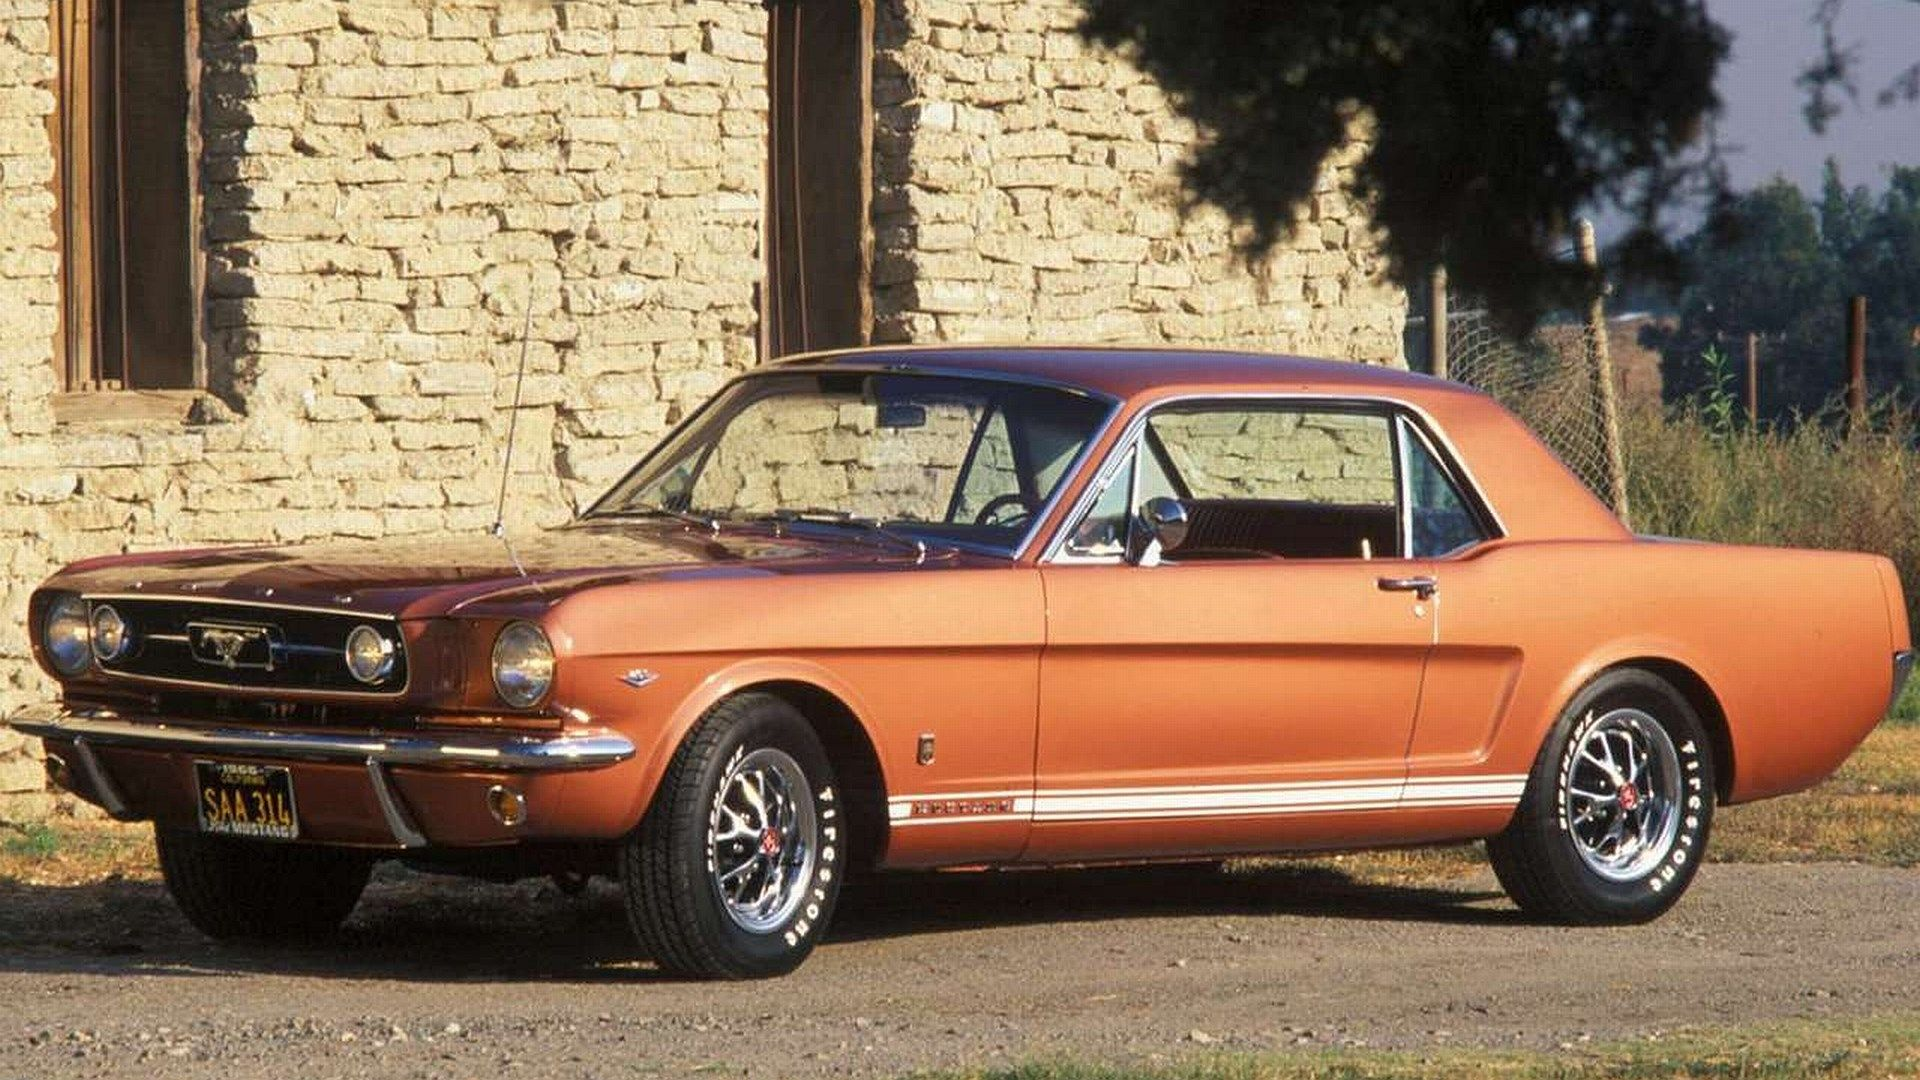 Widescreen Backgrounds Ford Ford Mustang Coupe Ford Mustang 1966 Ford Mustang